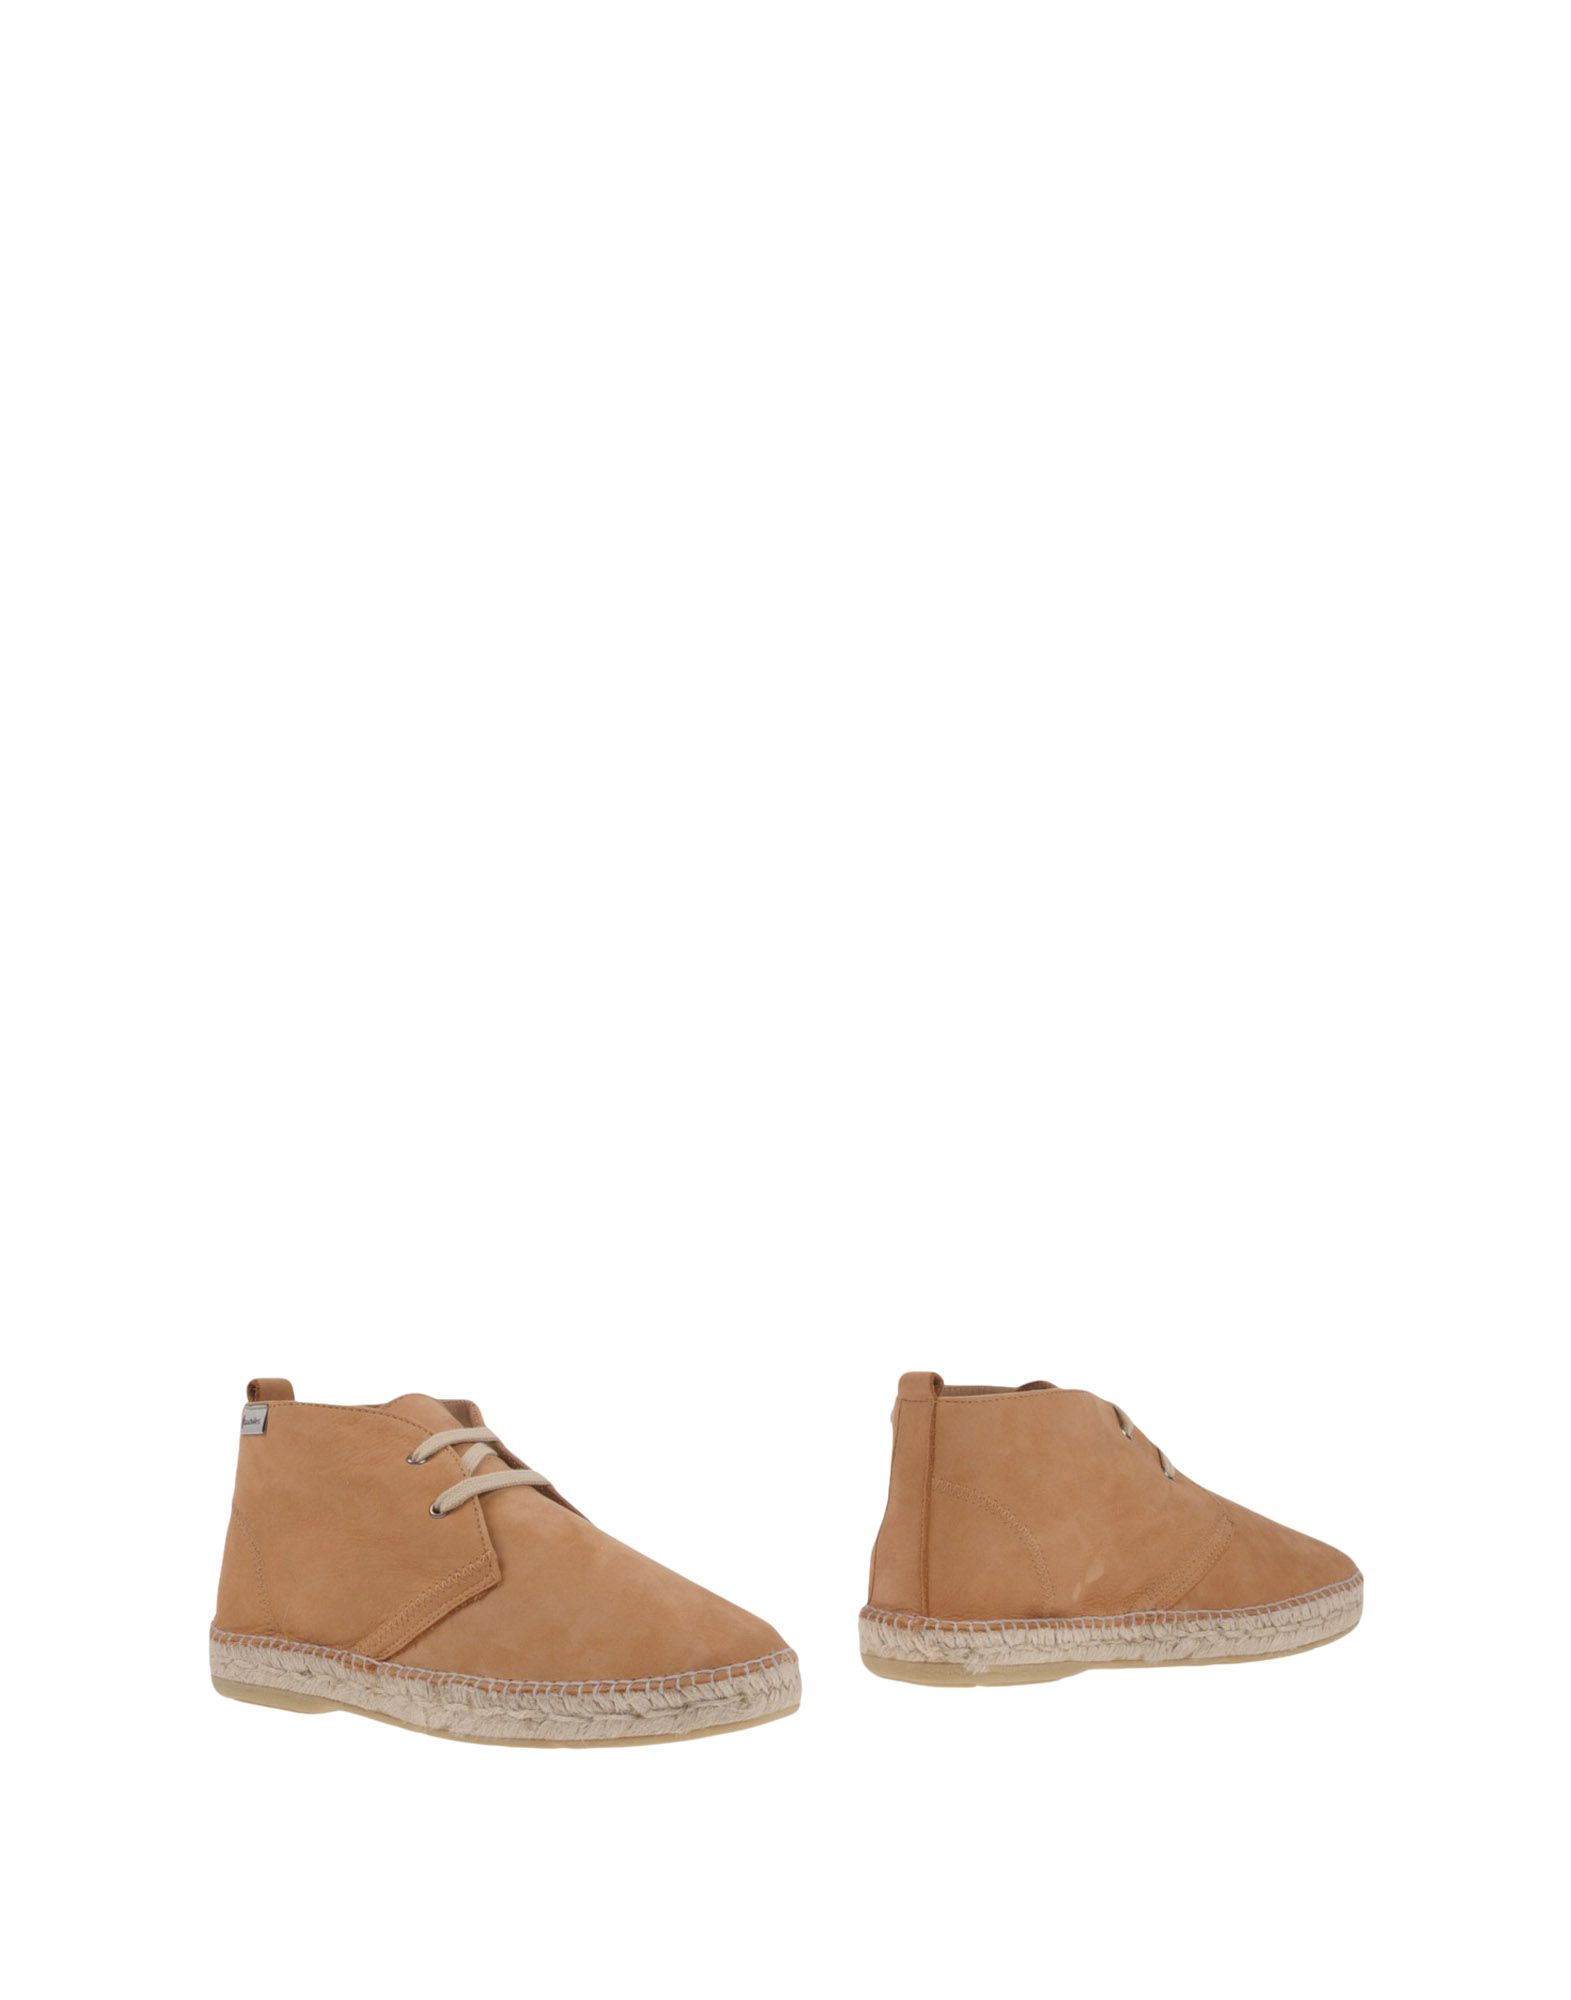 ESPADRILLES Boots in Tan